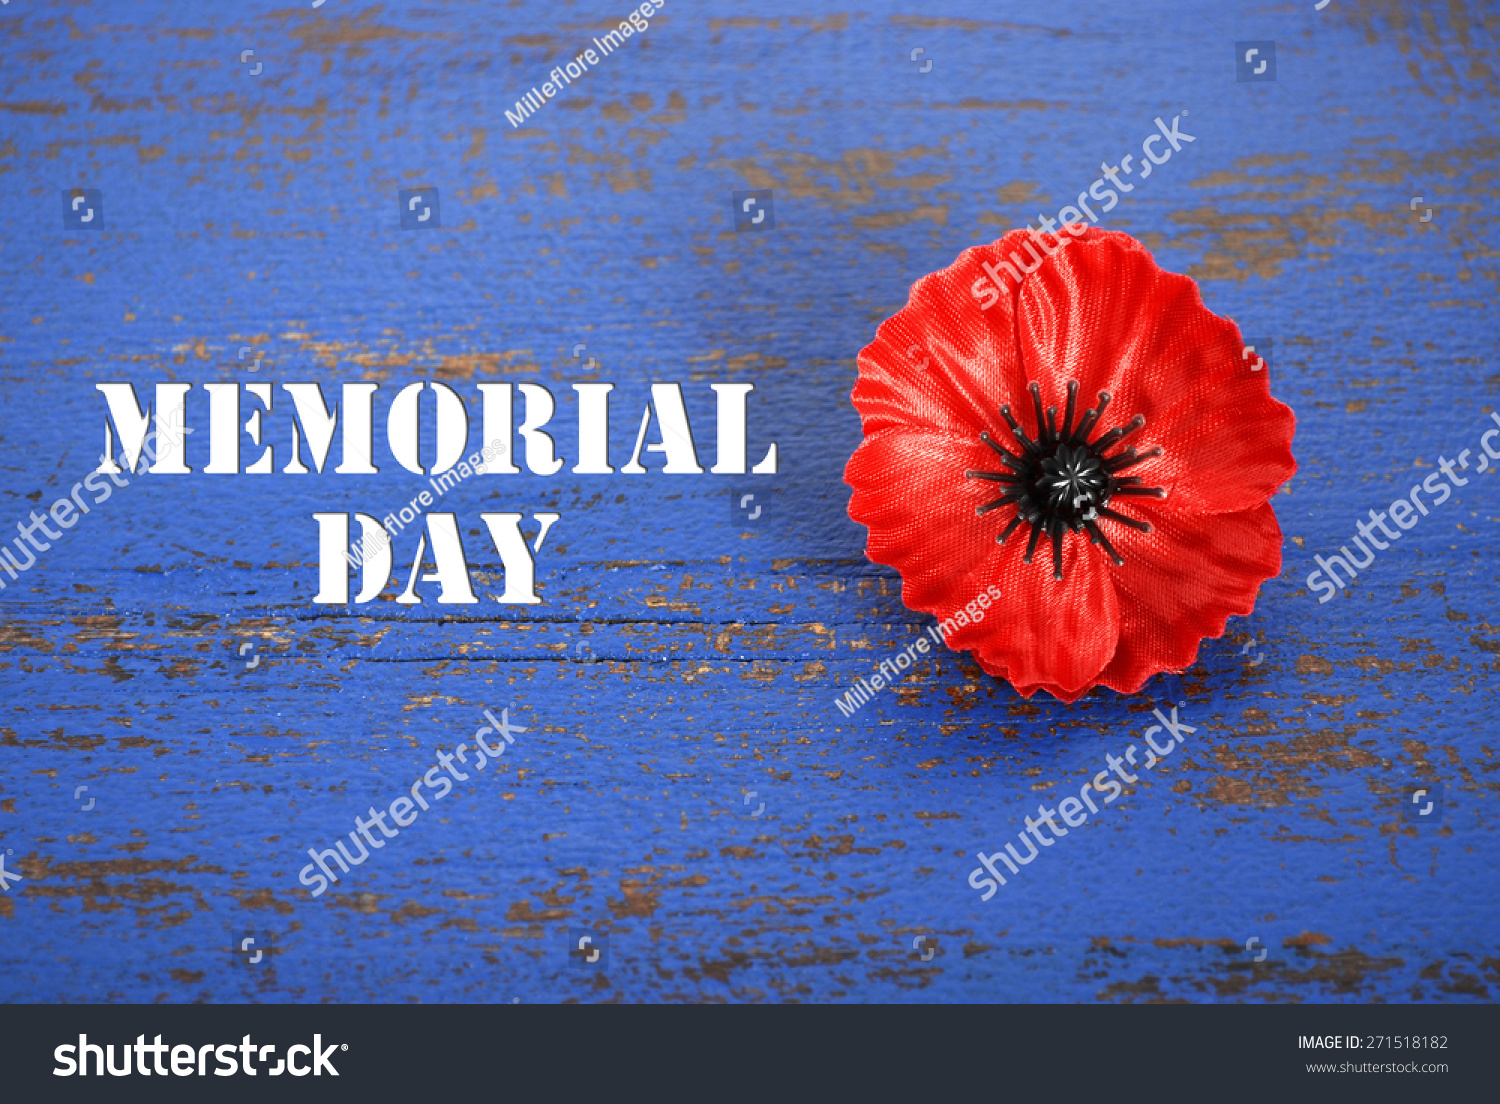 Usa memorial day concept red remembrance stock photo royalty free usa memorial day concept of red remembrance poppy on dark blue vintage distressed wood table publicscrutiny Gallery